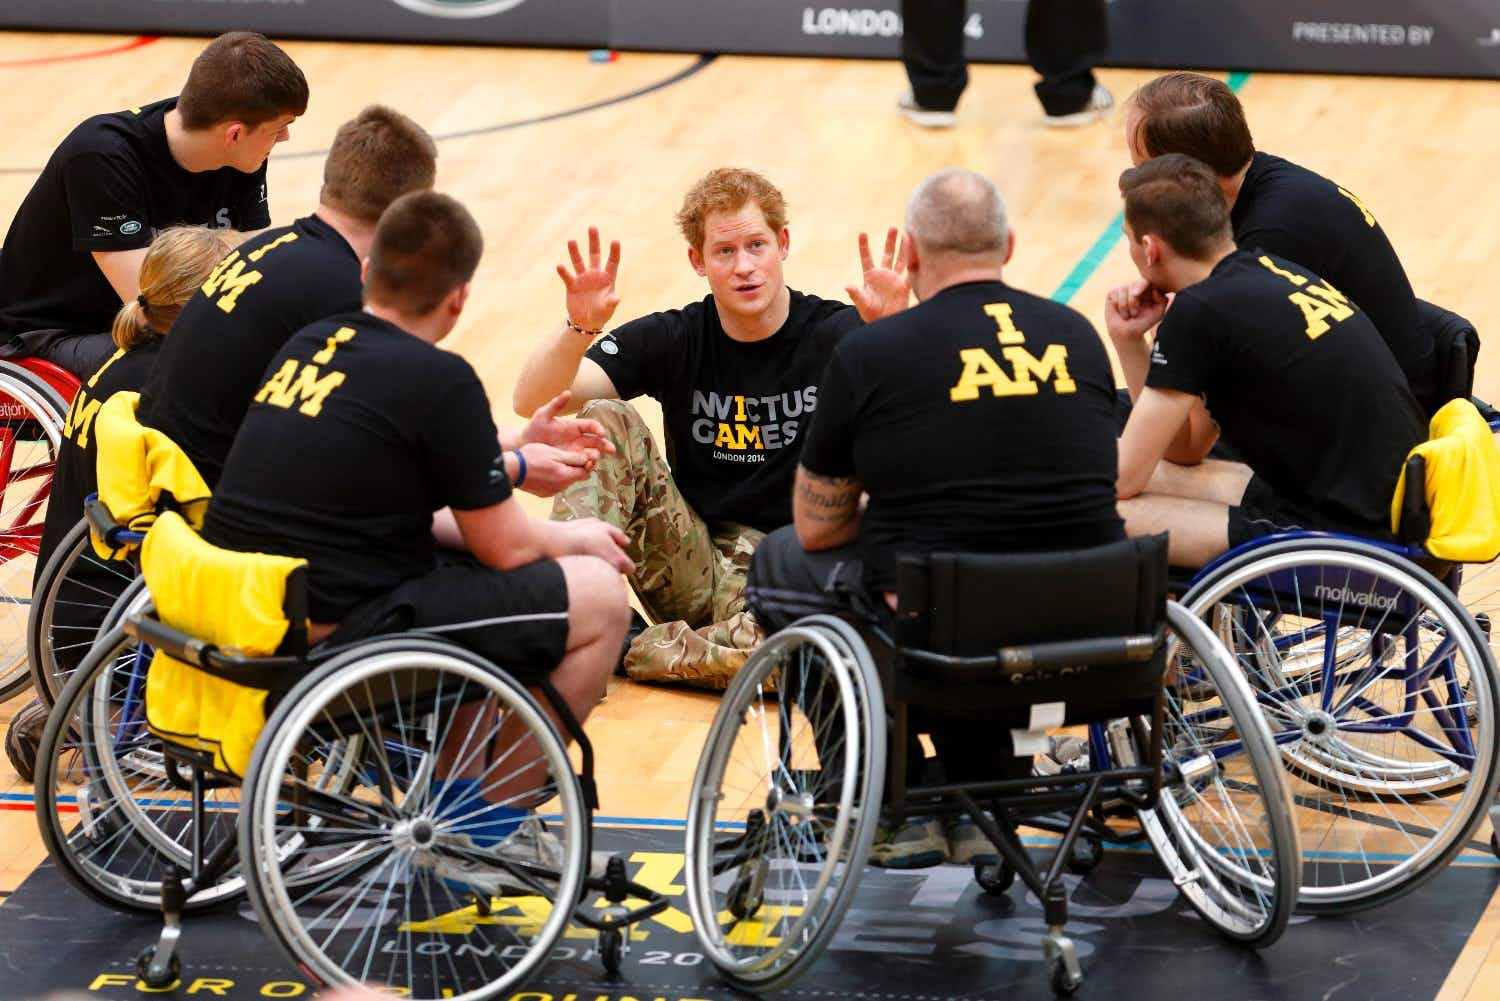 Prince Harry announces the Invictus Games will be held in The Netherlands in 2020